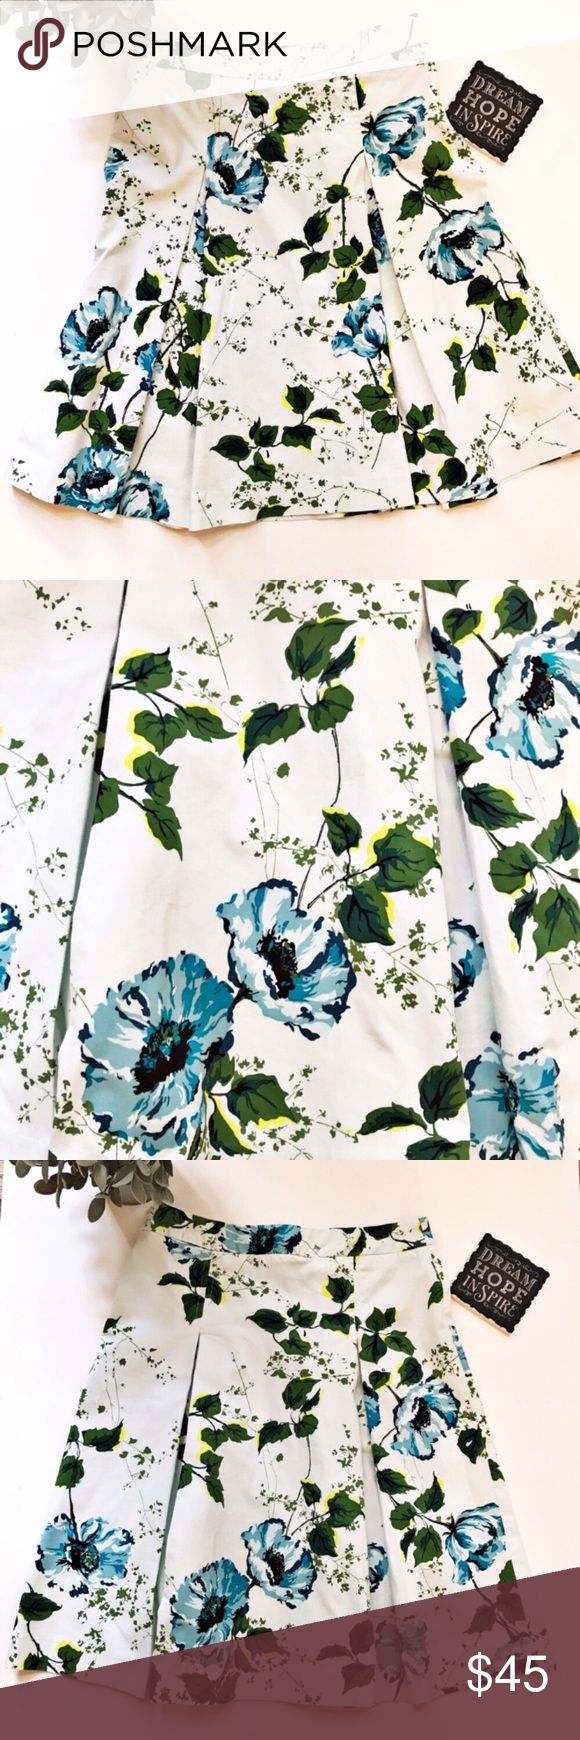 "Banana Republic Floral Pleated A-Line Skirt New without tags Banana Republic pleated a-line stretch skirt. Beautiful floral print. On trend for Fall. Hidden side zipper. Fun, flirty and versatile. Tag size 0. 97% Cotton, 3% Spandex. Approximate measurements laying flat: waist 13"", outseam 21"". 👗👛👠👙👕Bundle & Save! Banana Republic Skirts A-Line or Full"